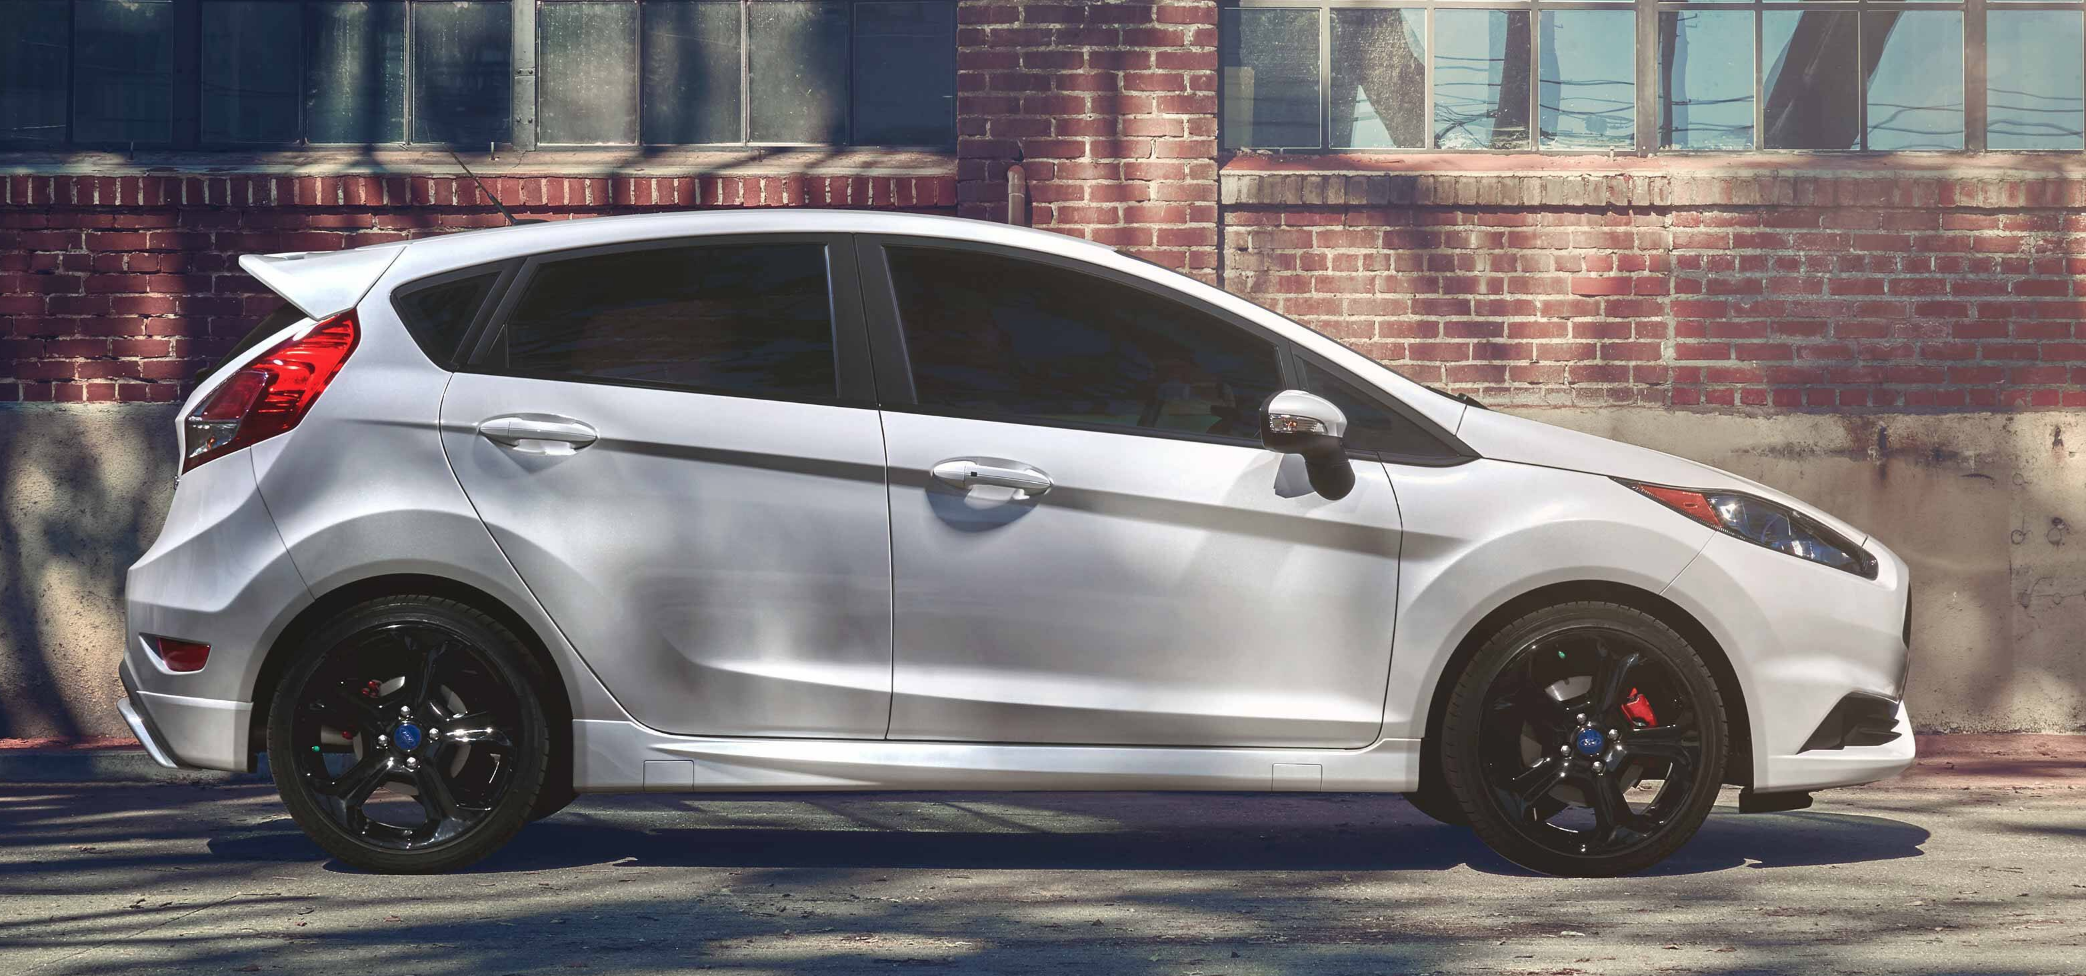 New Ford Fiesta in Alexandria, VA